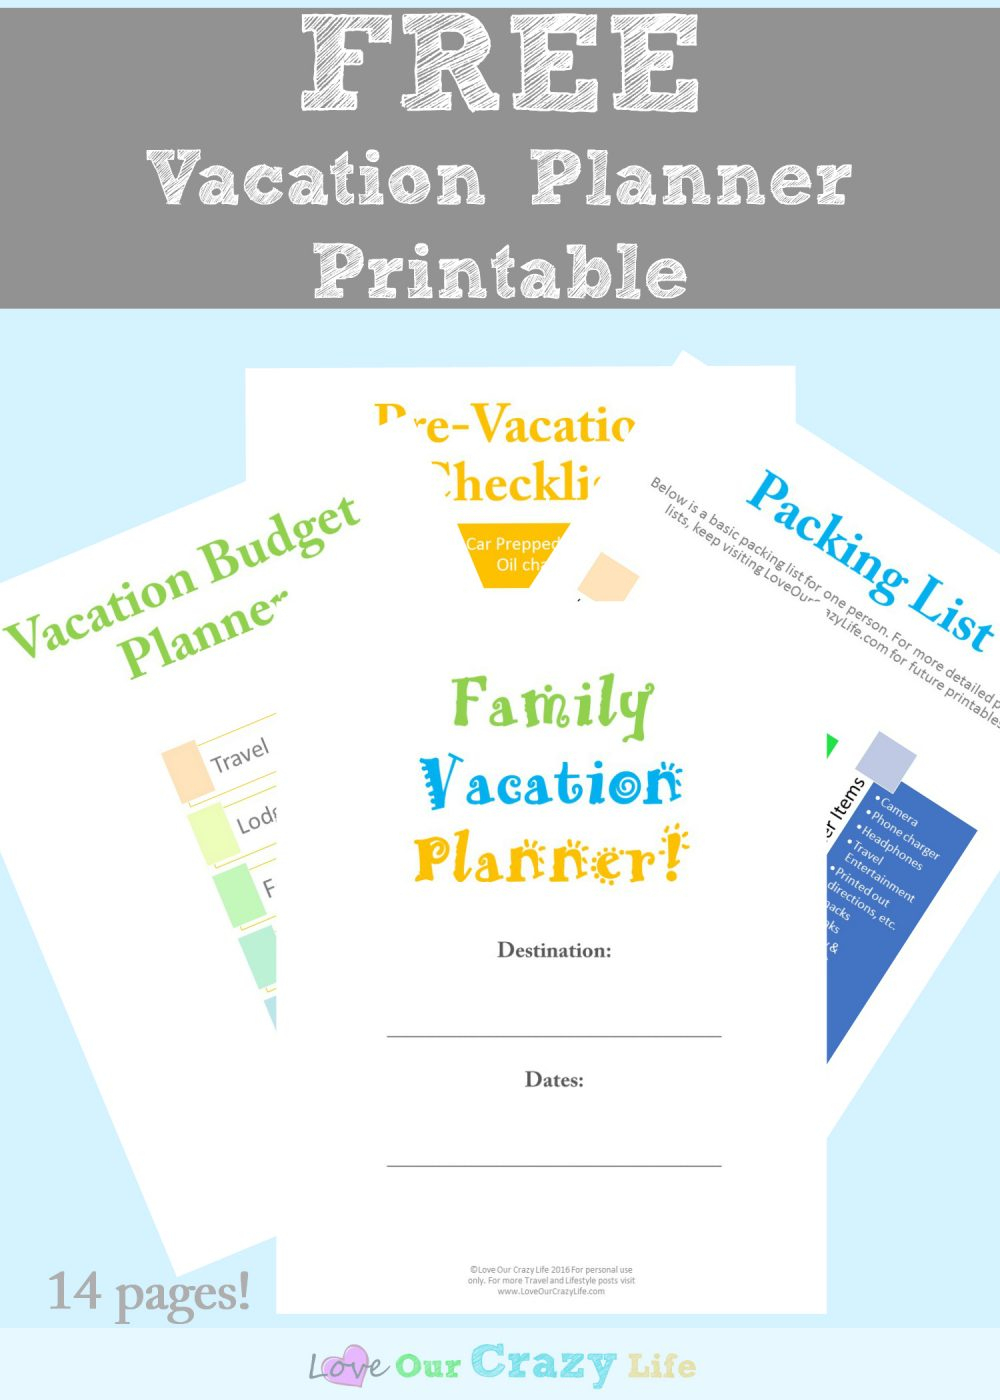 Family Vacation Planning Tips (Free Planner)   This Crazy Adventure - Free Printable Trip Planner